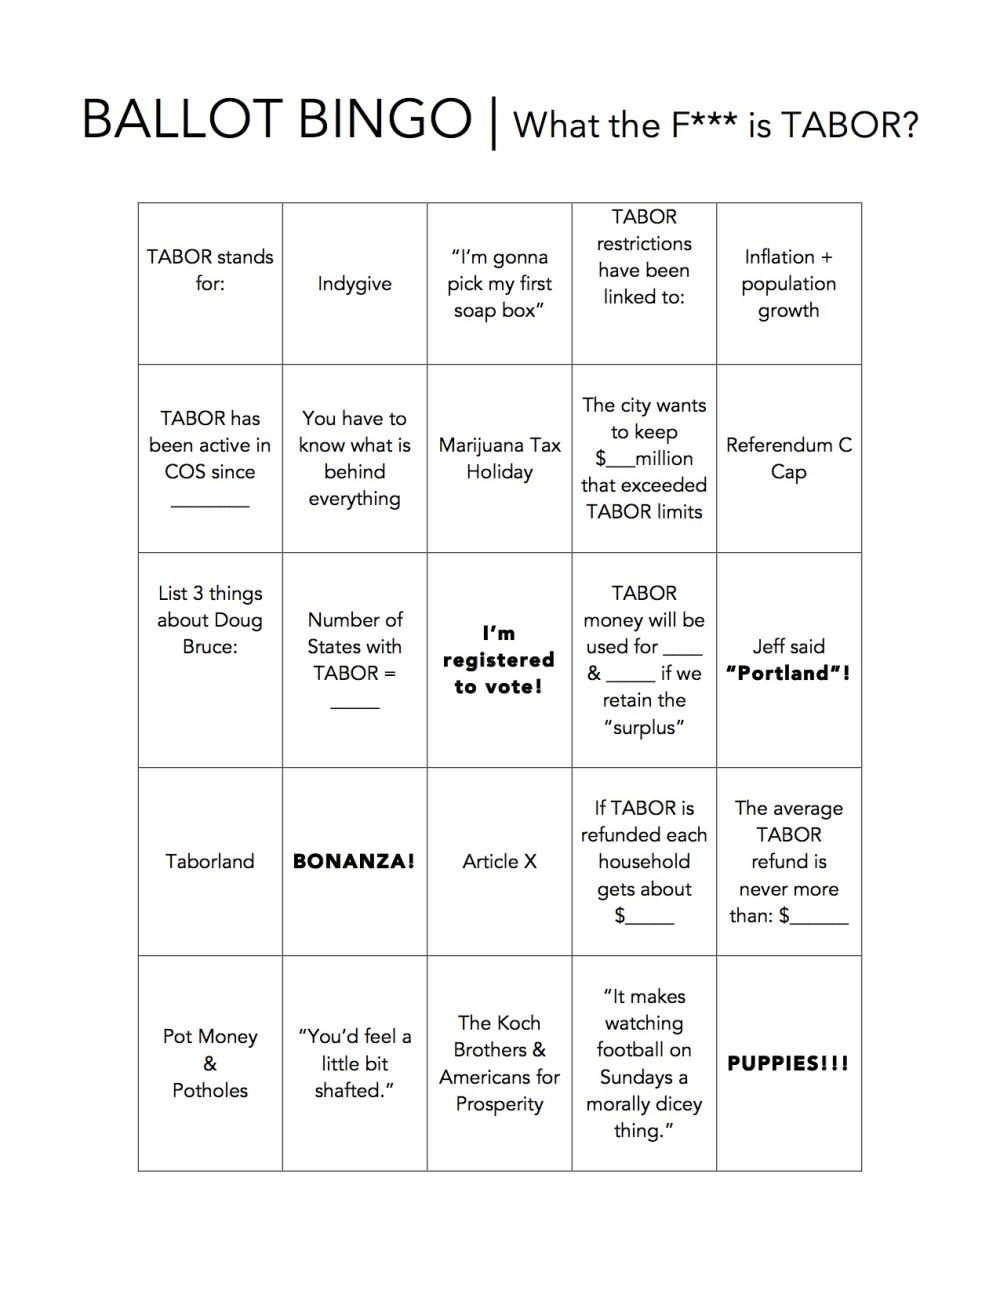 Click the image to save or print the ballot bingo card and listen Tuesday Oct 20 at 5PM from KCMJ.org or on demand starting Wednesday morning to play!